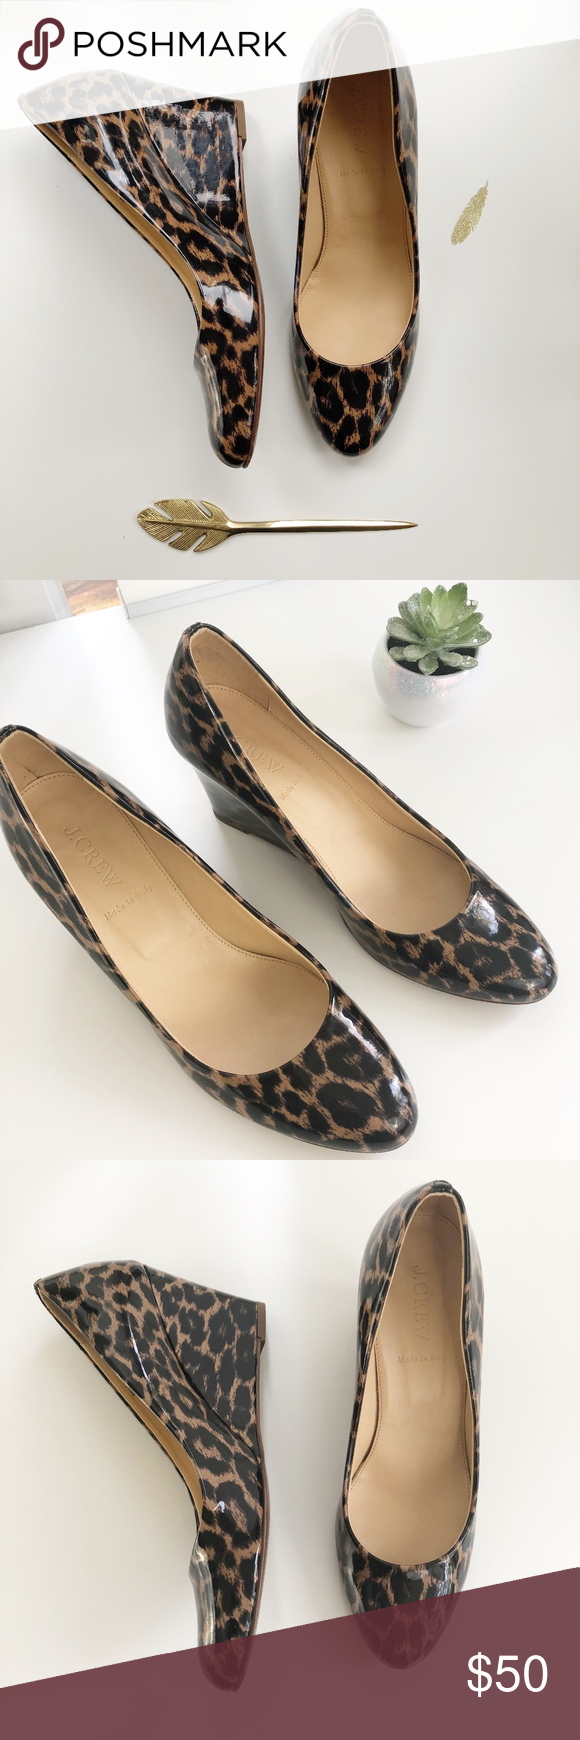 7c482665c3d J Crew Patent Leather Leopard Wedge Excellent Used Condition, No ...